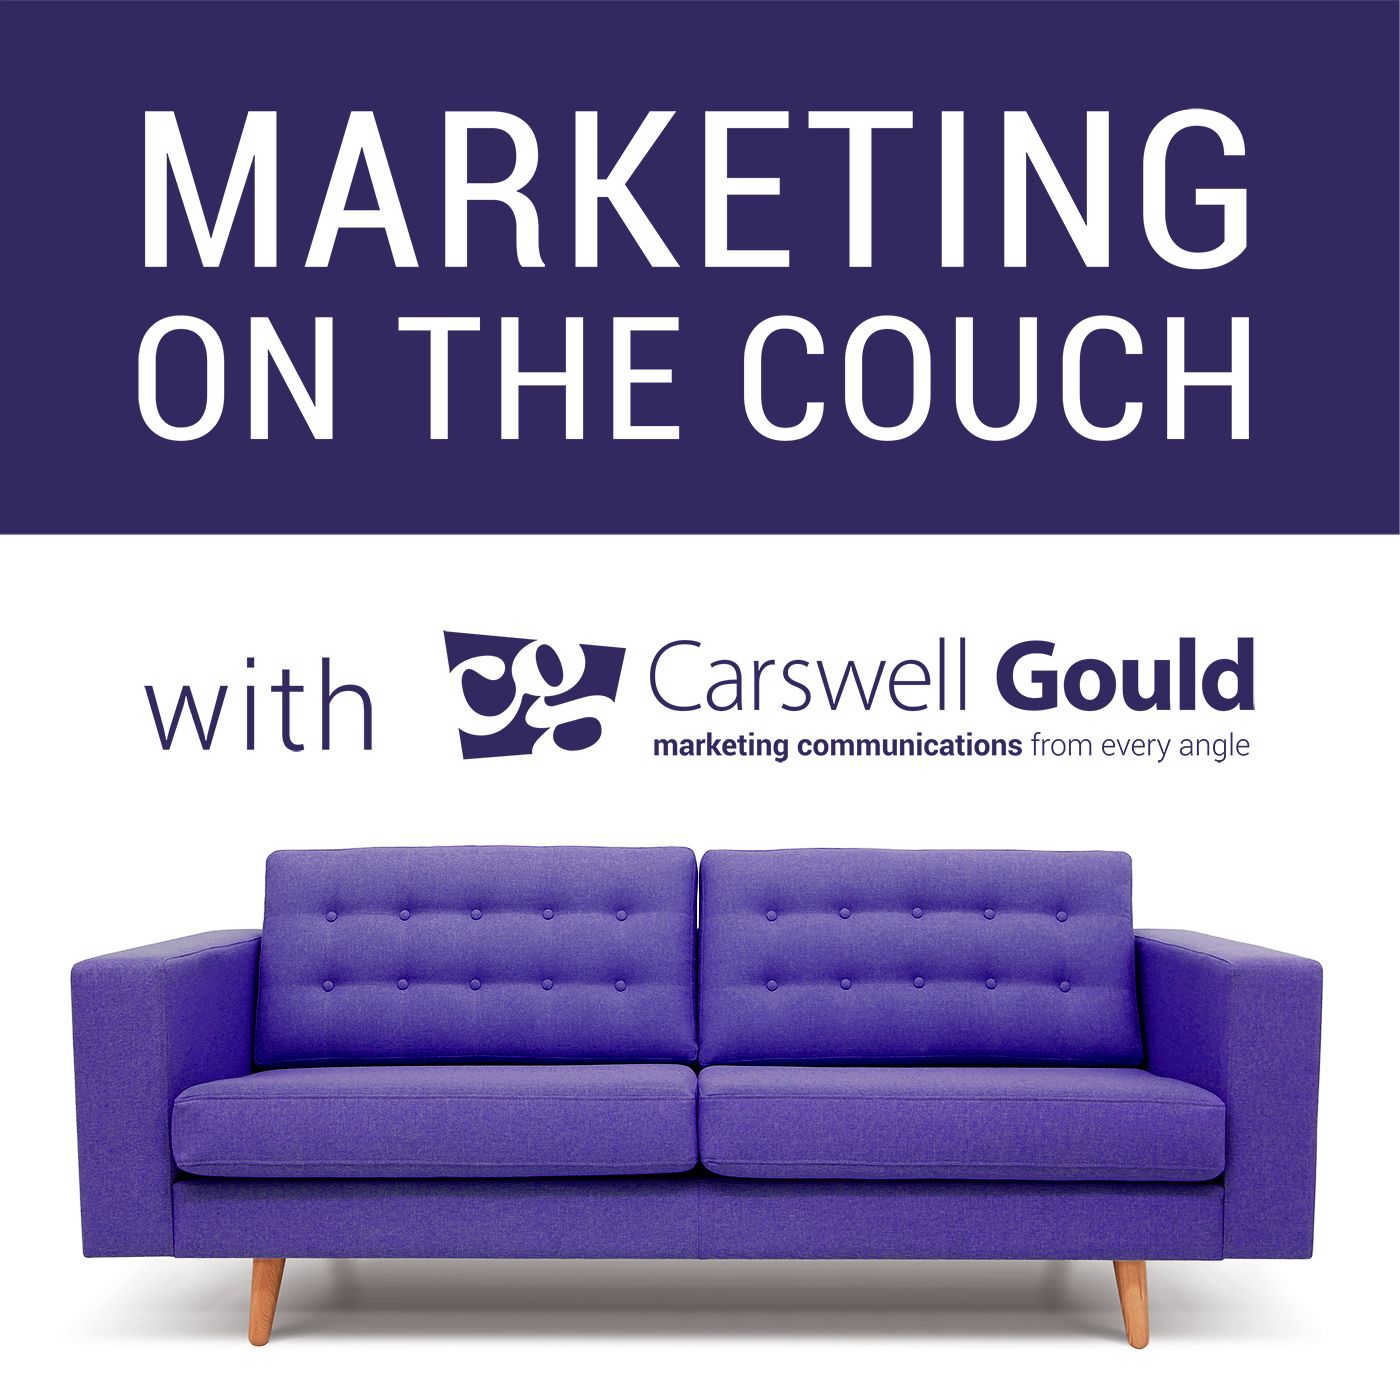 Marketing on the Couch